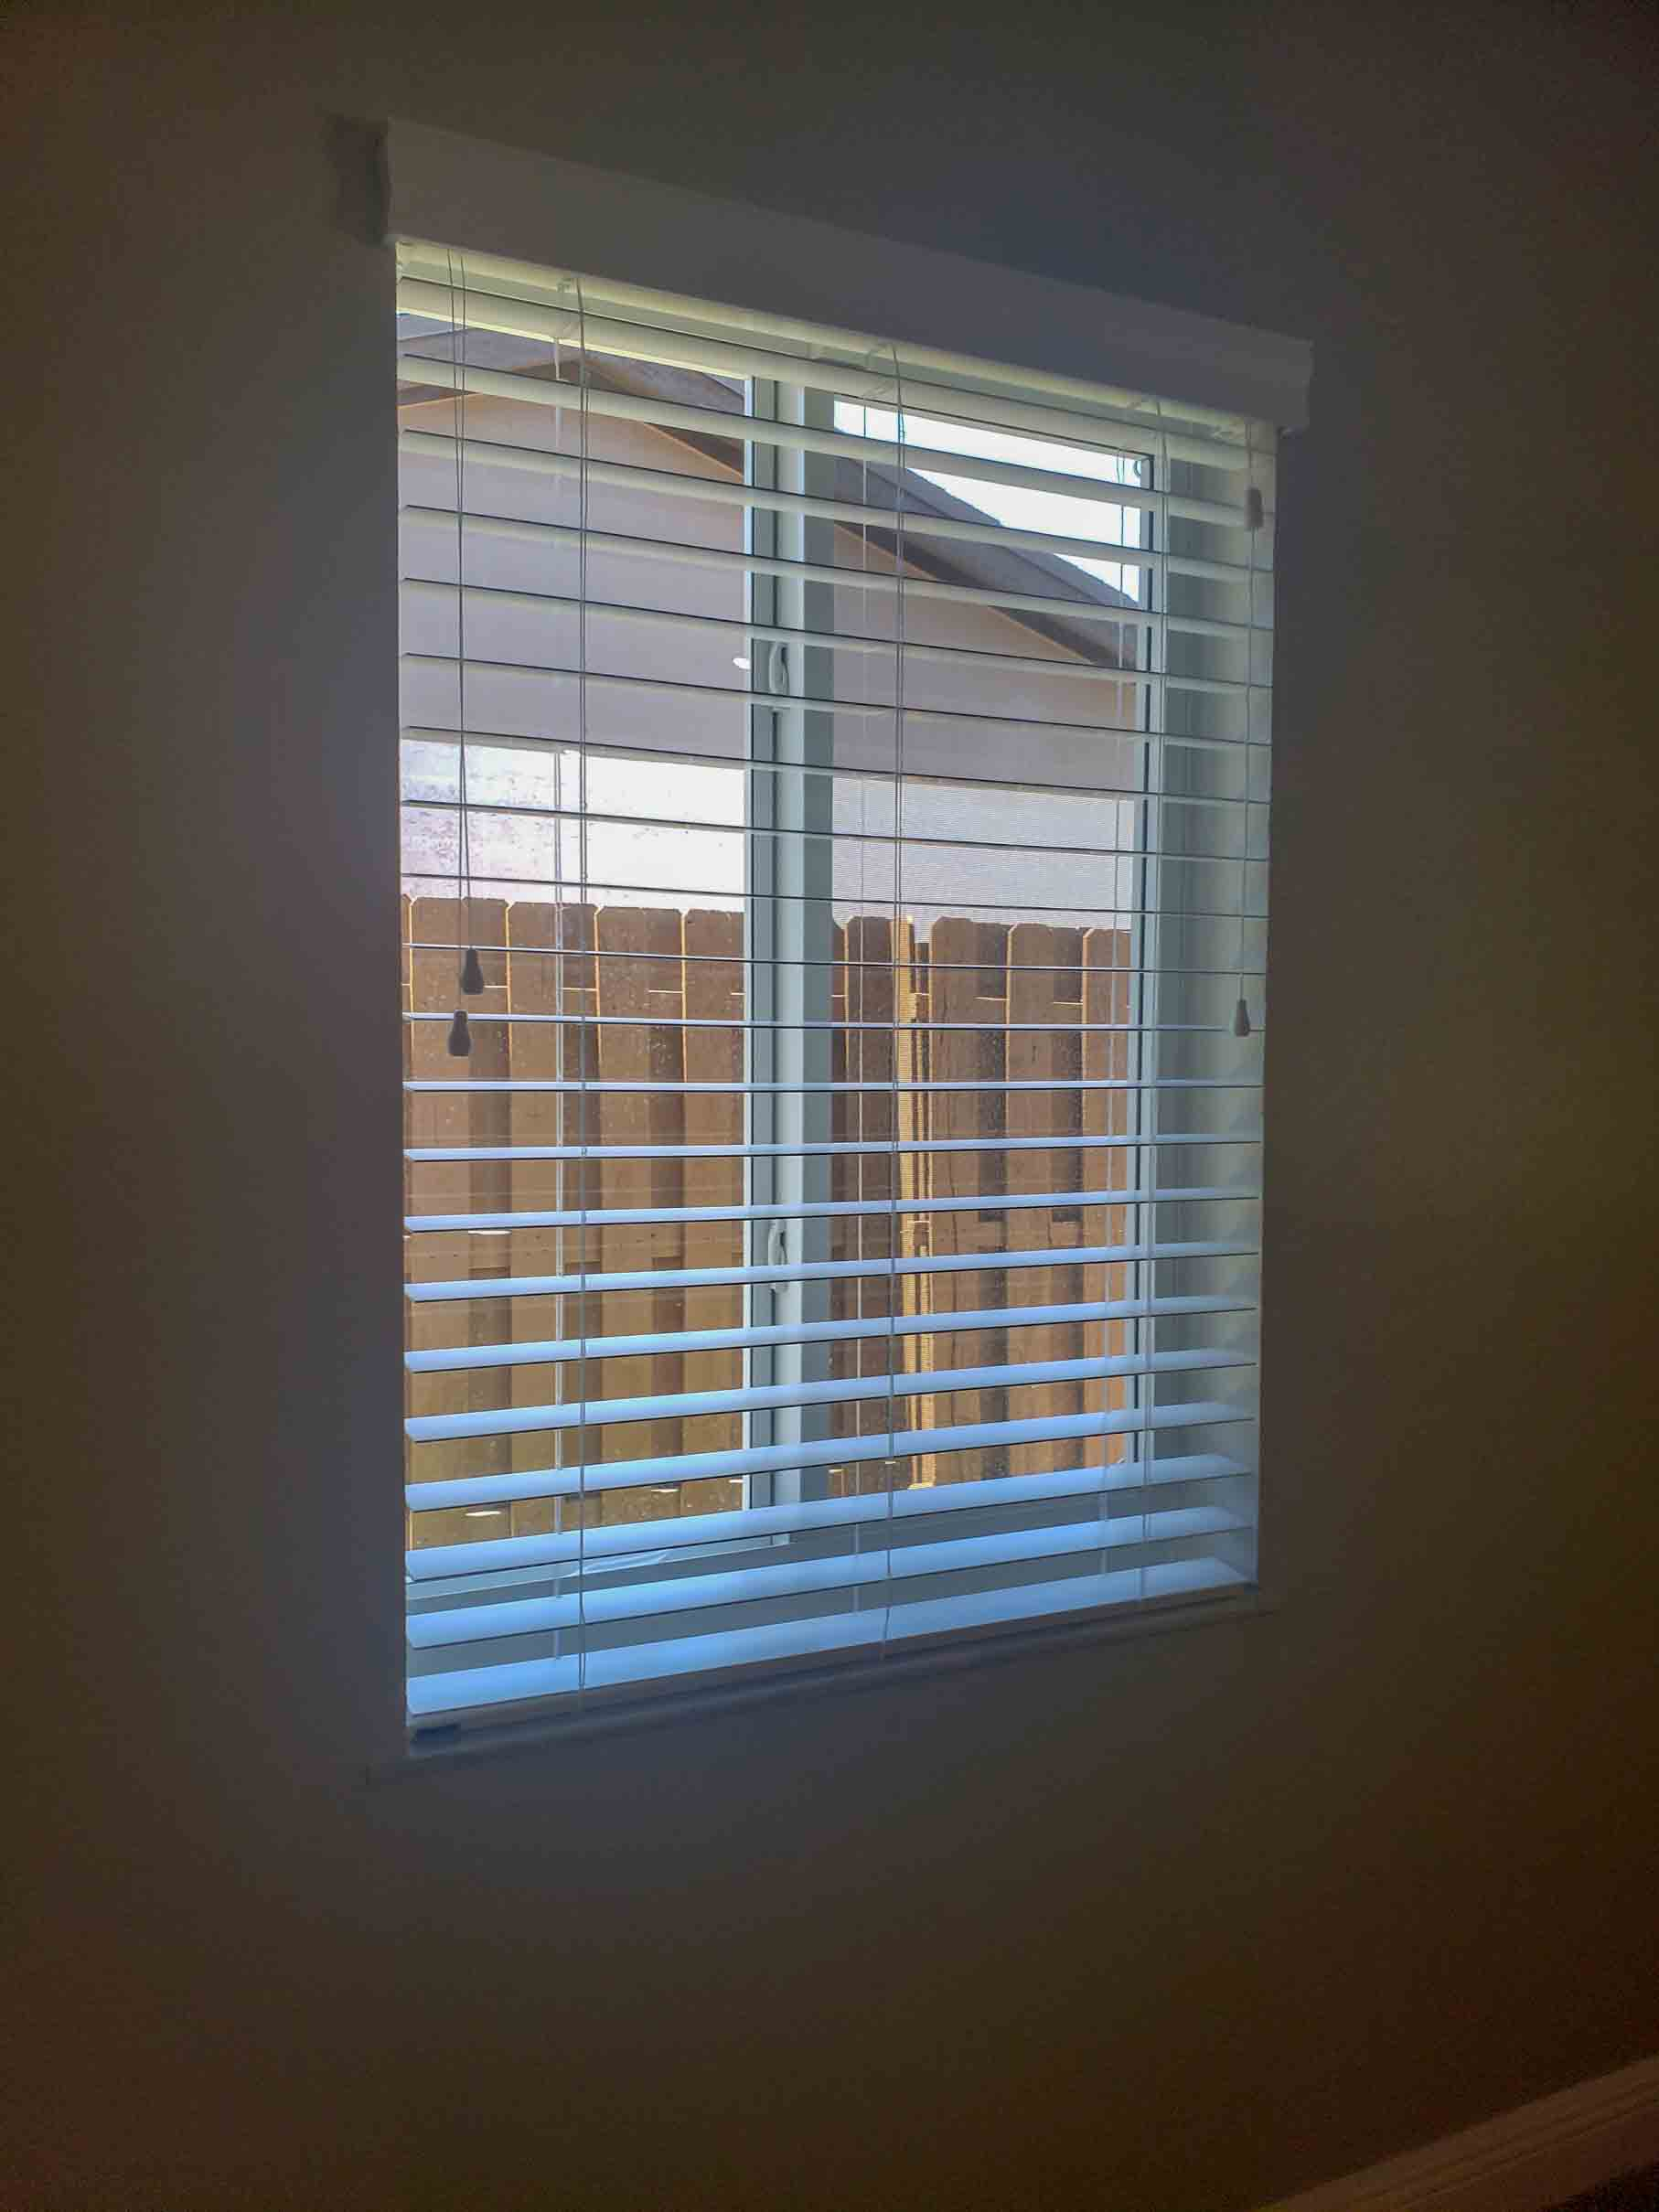 wood blinds gallery WOOD BLINDS GALLERY 20180428 133448